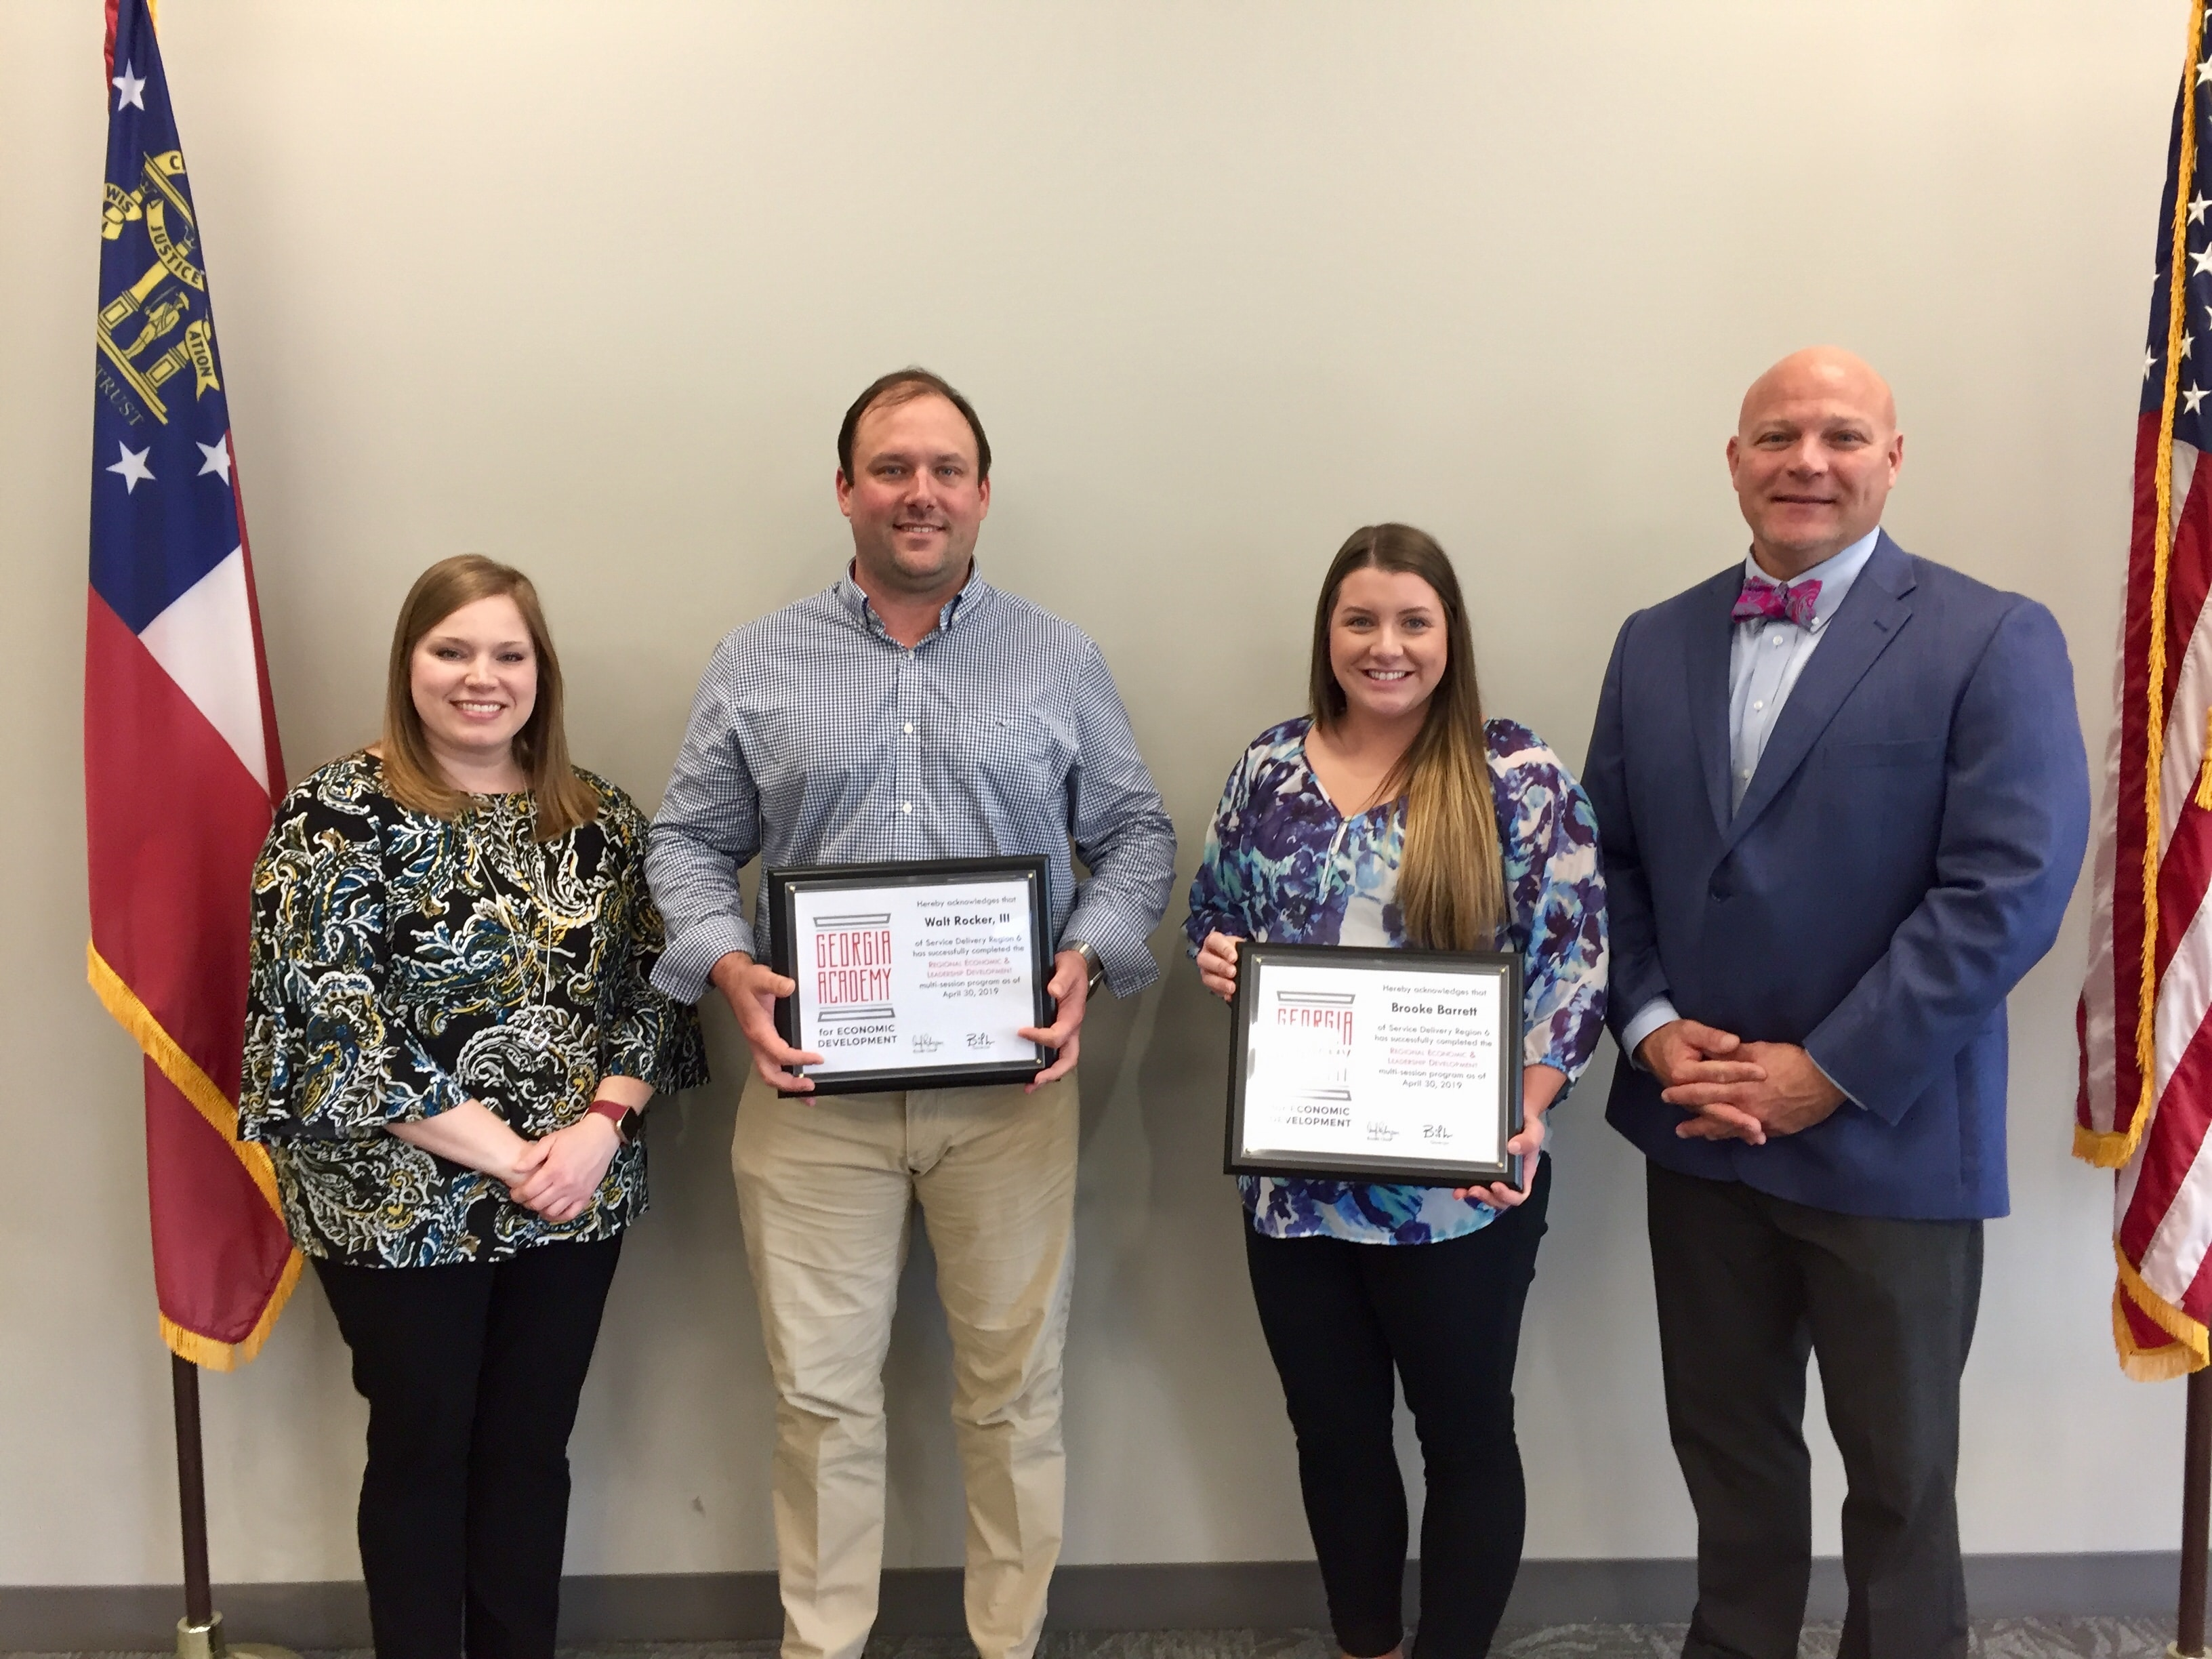 COUNTY LEADERS GRADUATE FROM THE GEORGIA ACADEMY FOR